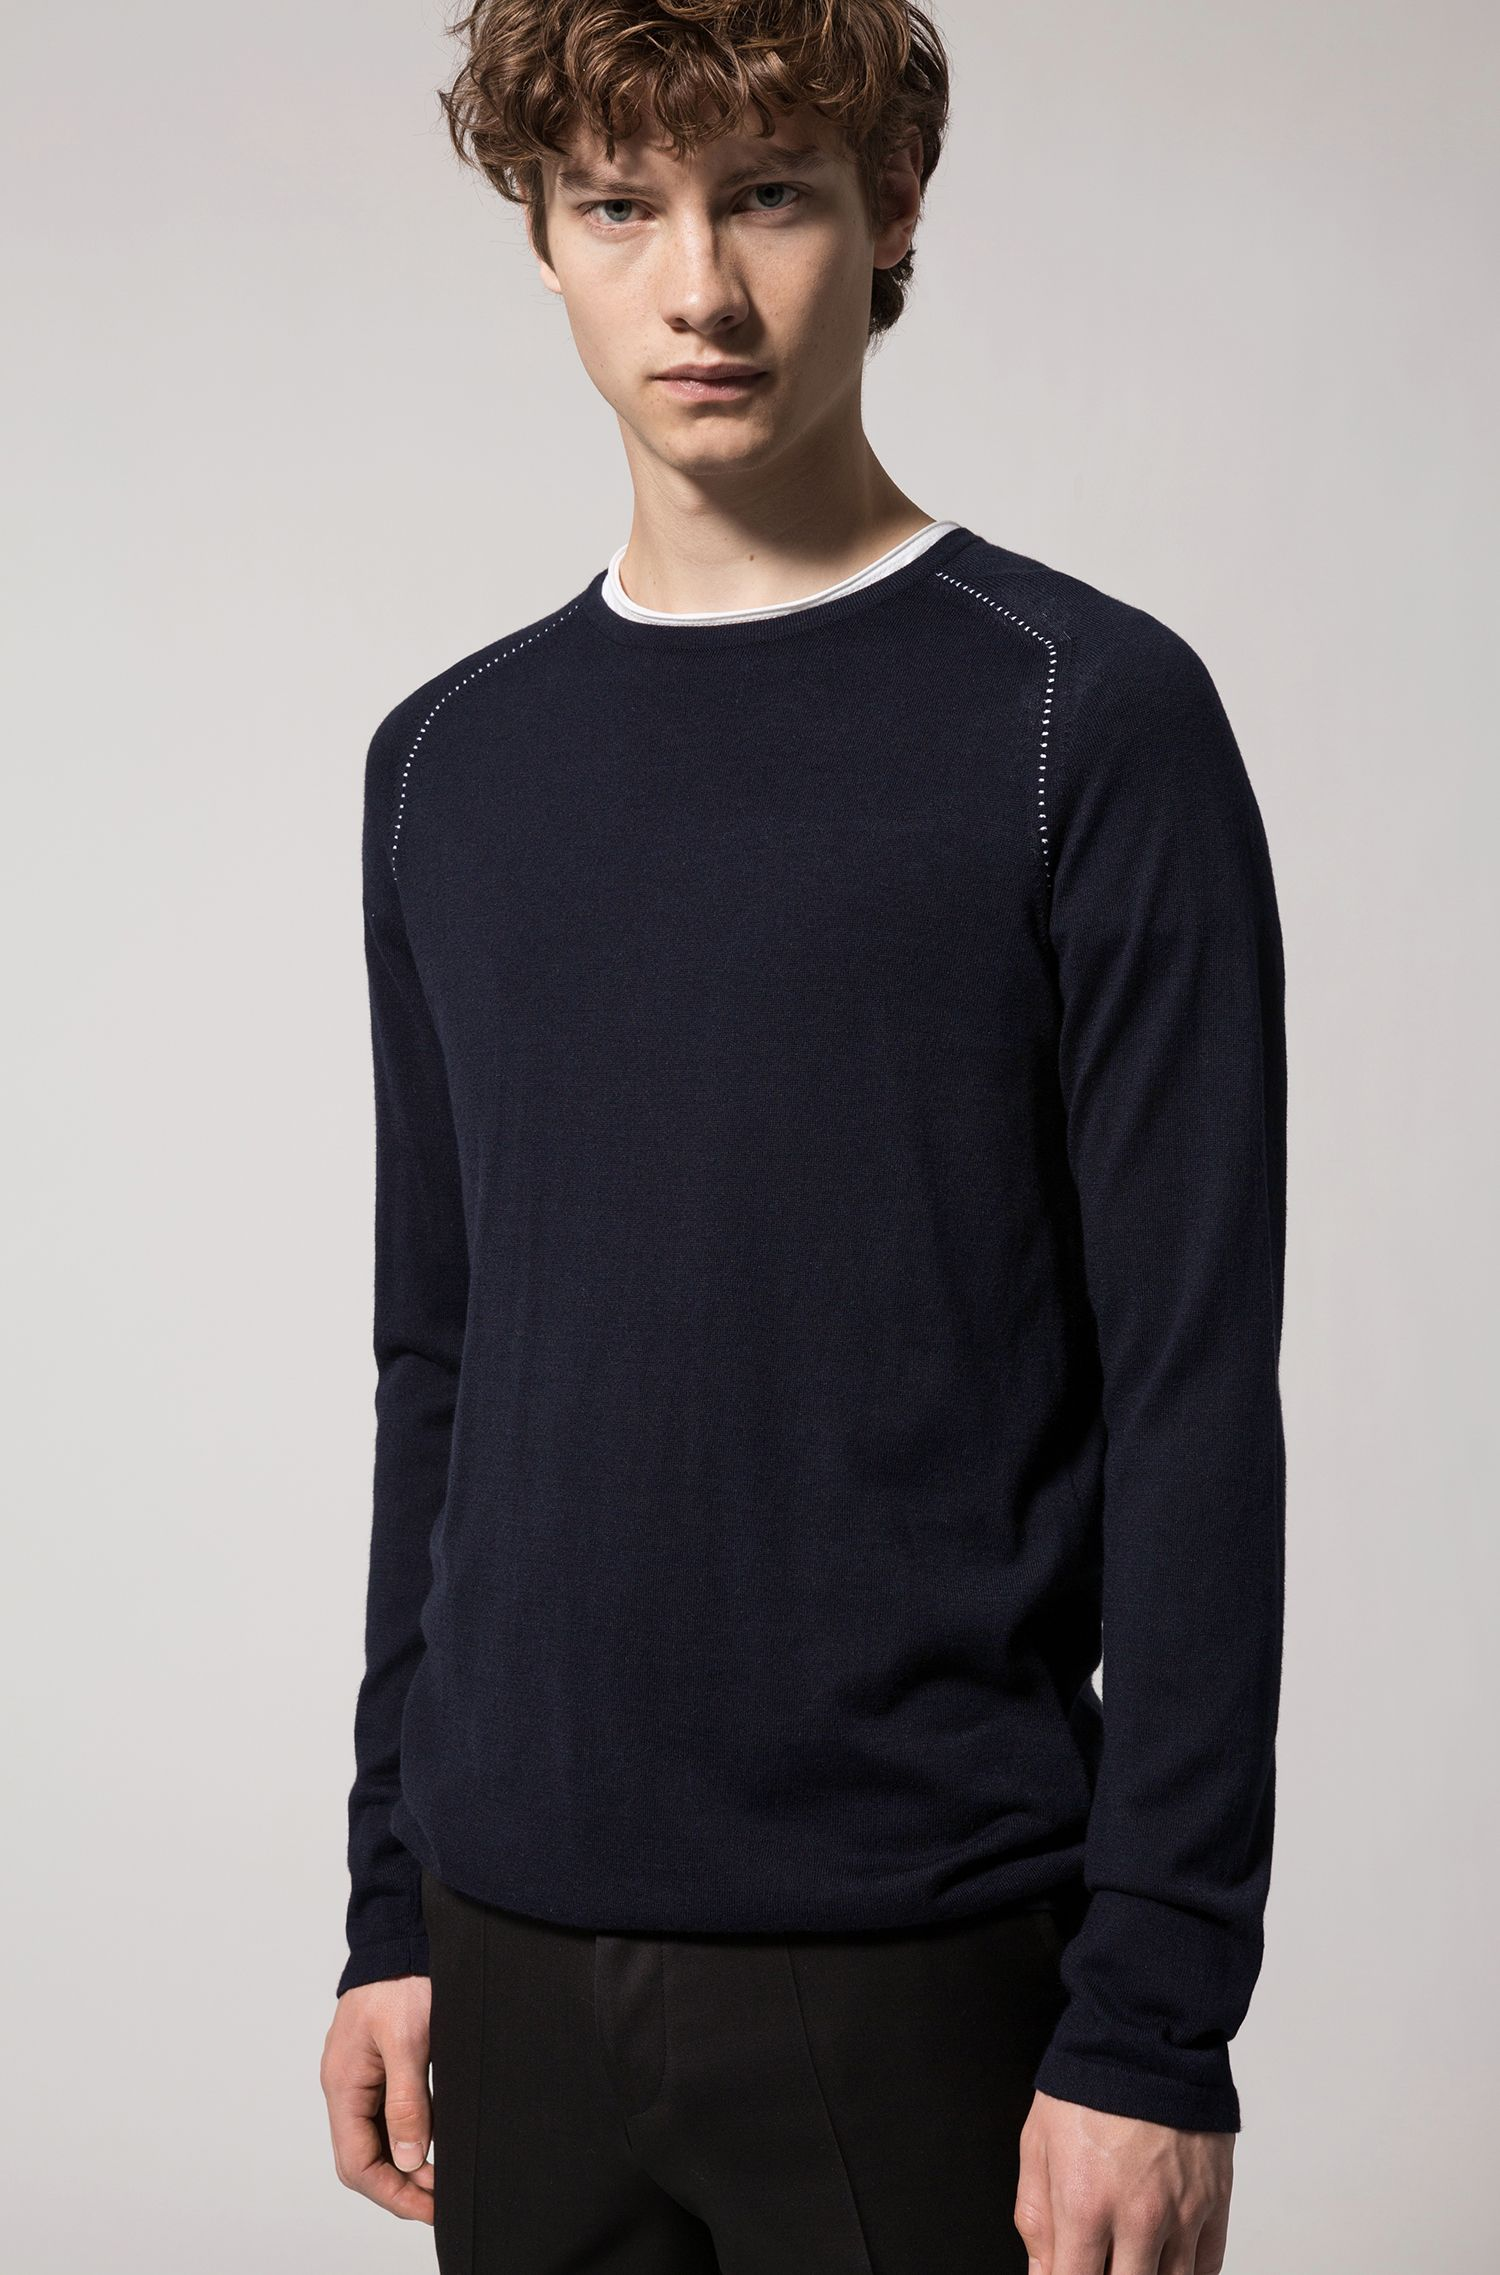 Cotton Blend Raglan-Stitched Sweater | Sevon